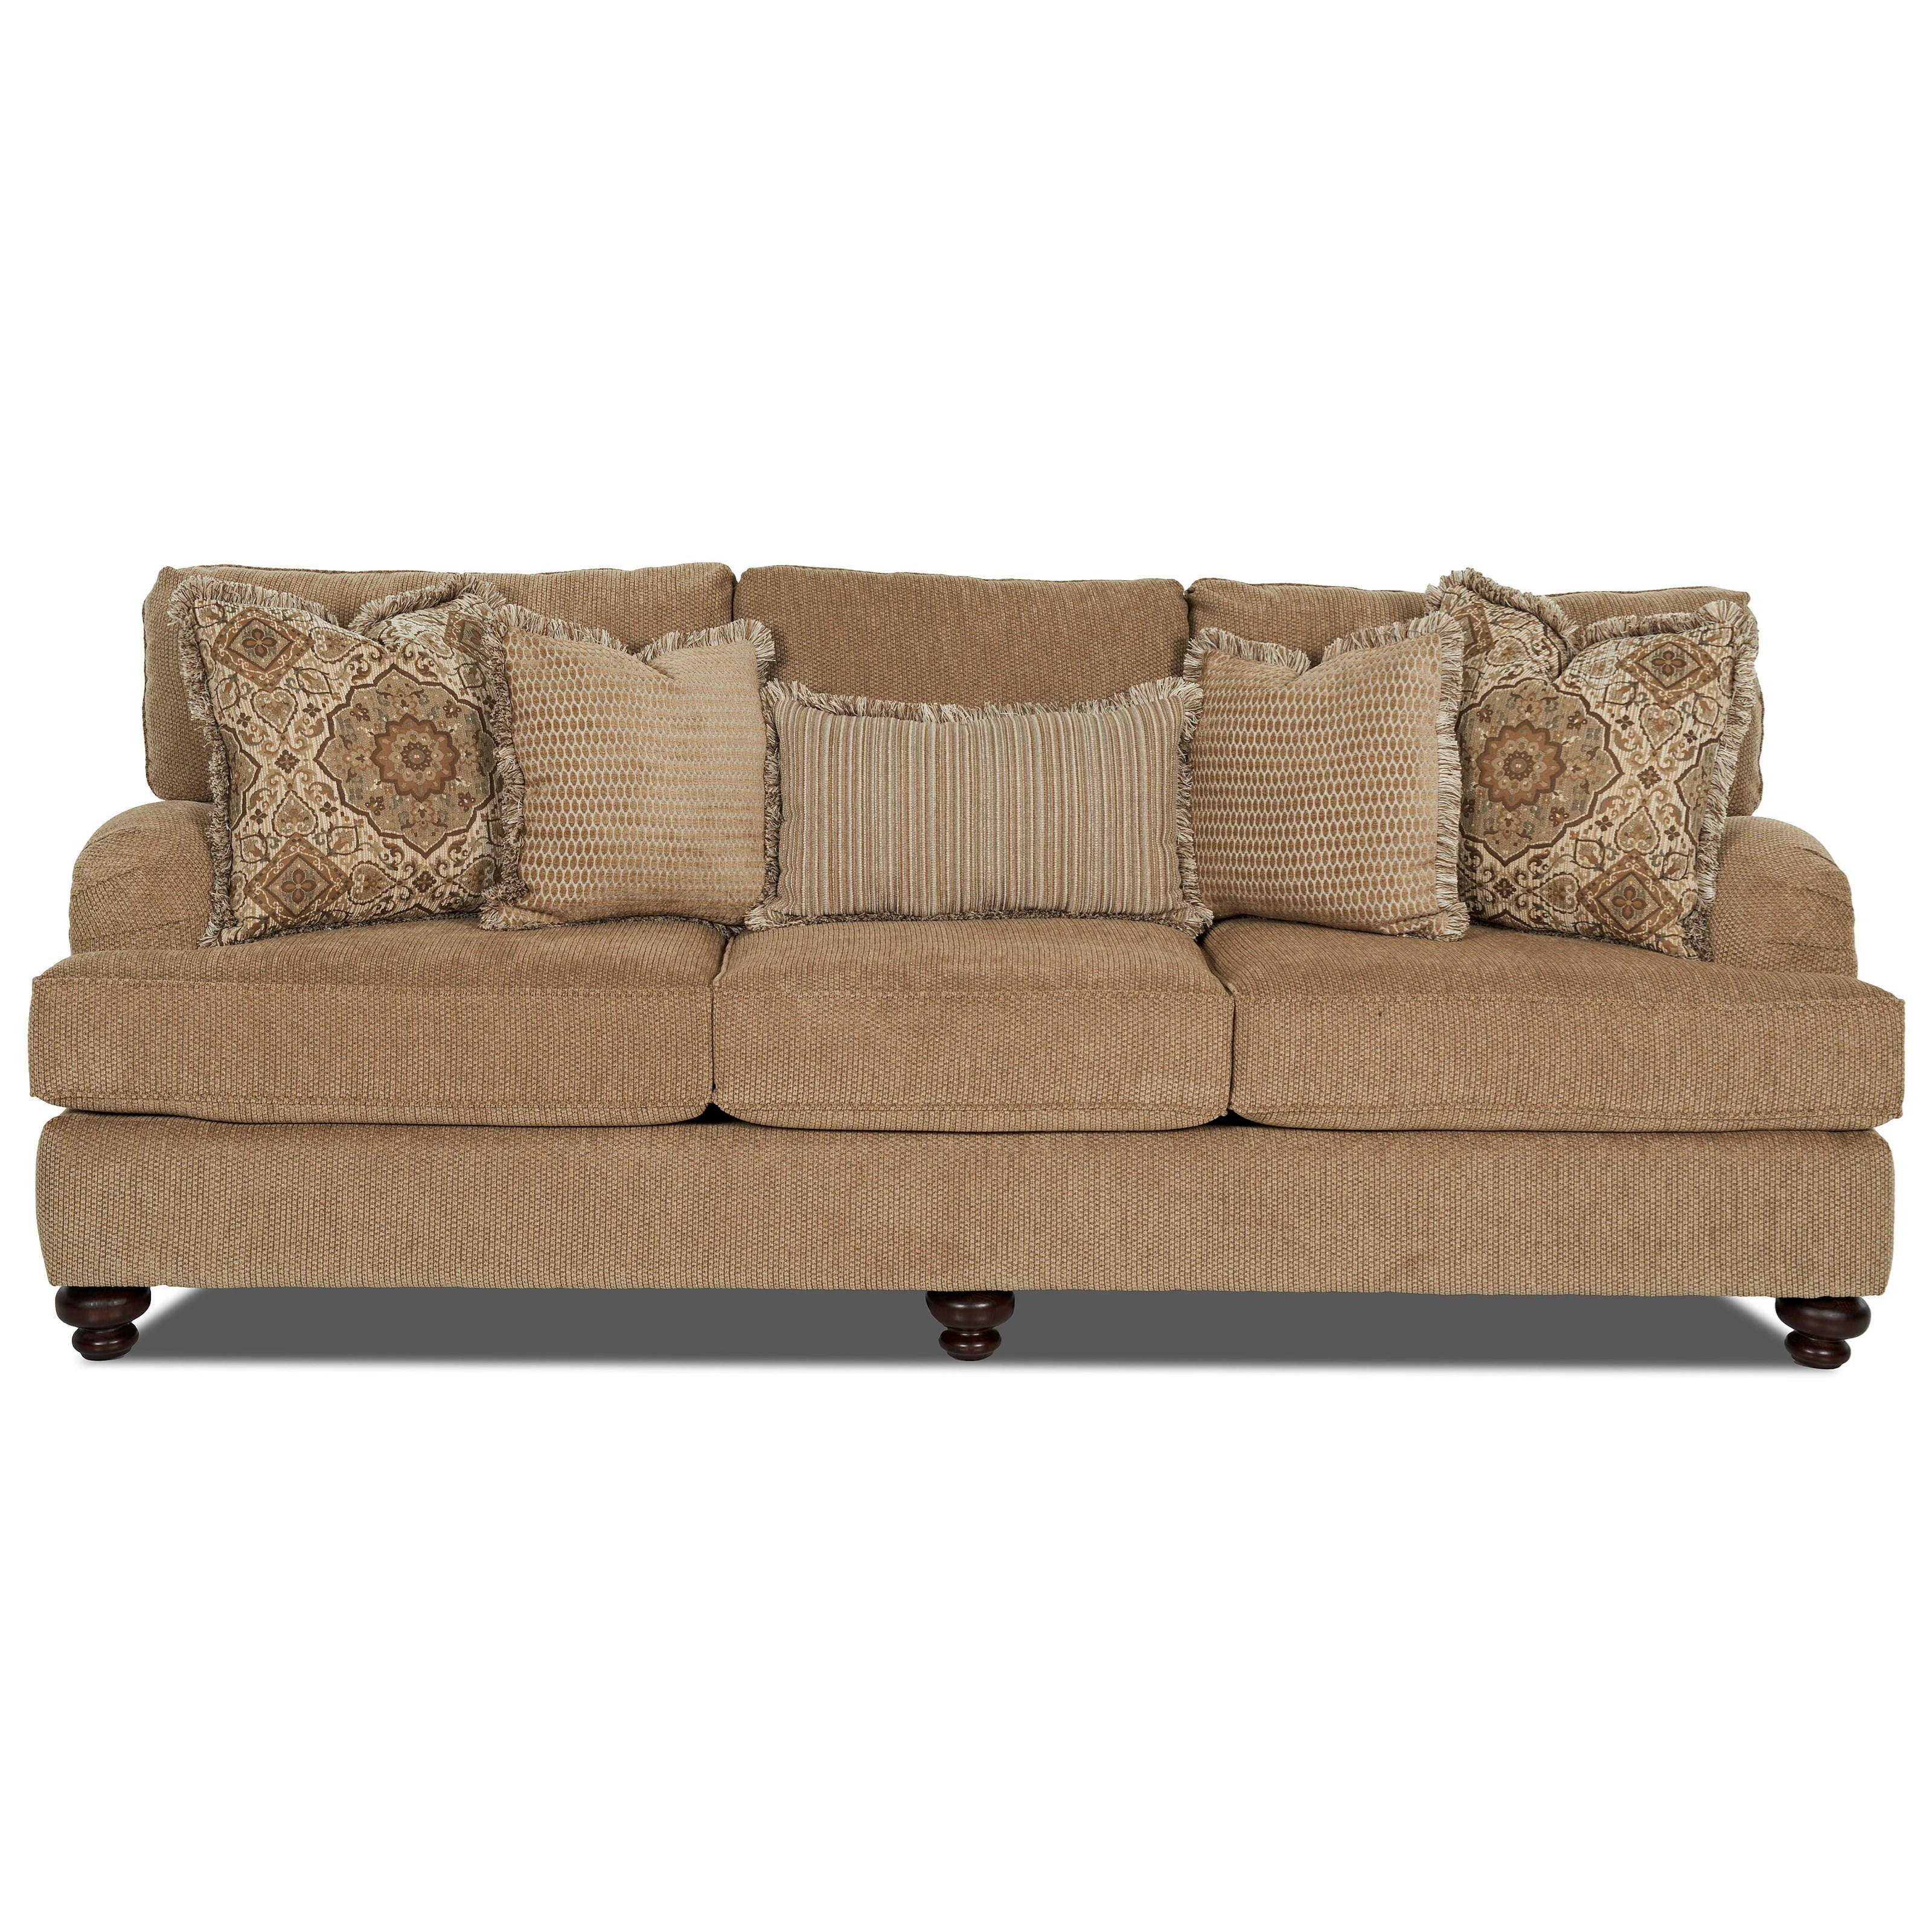 Klaussner Declan Traditional Sofa with Turned Feet Wayside